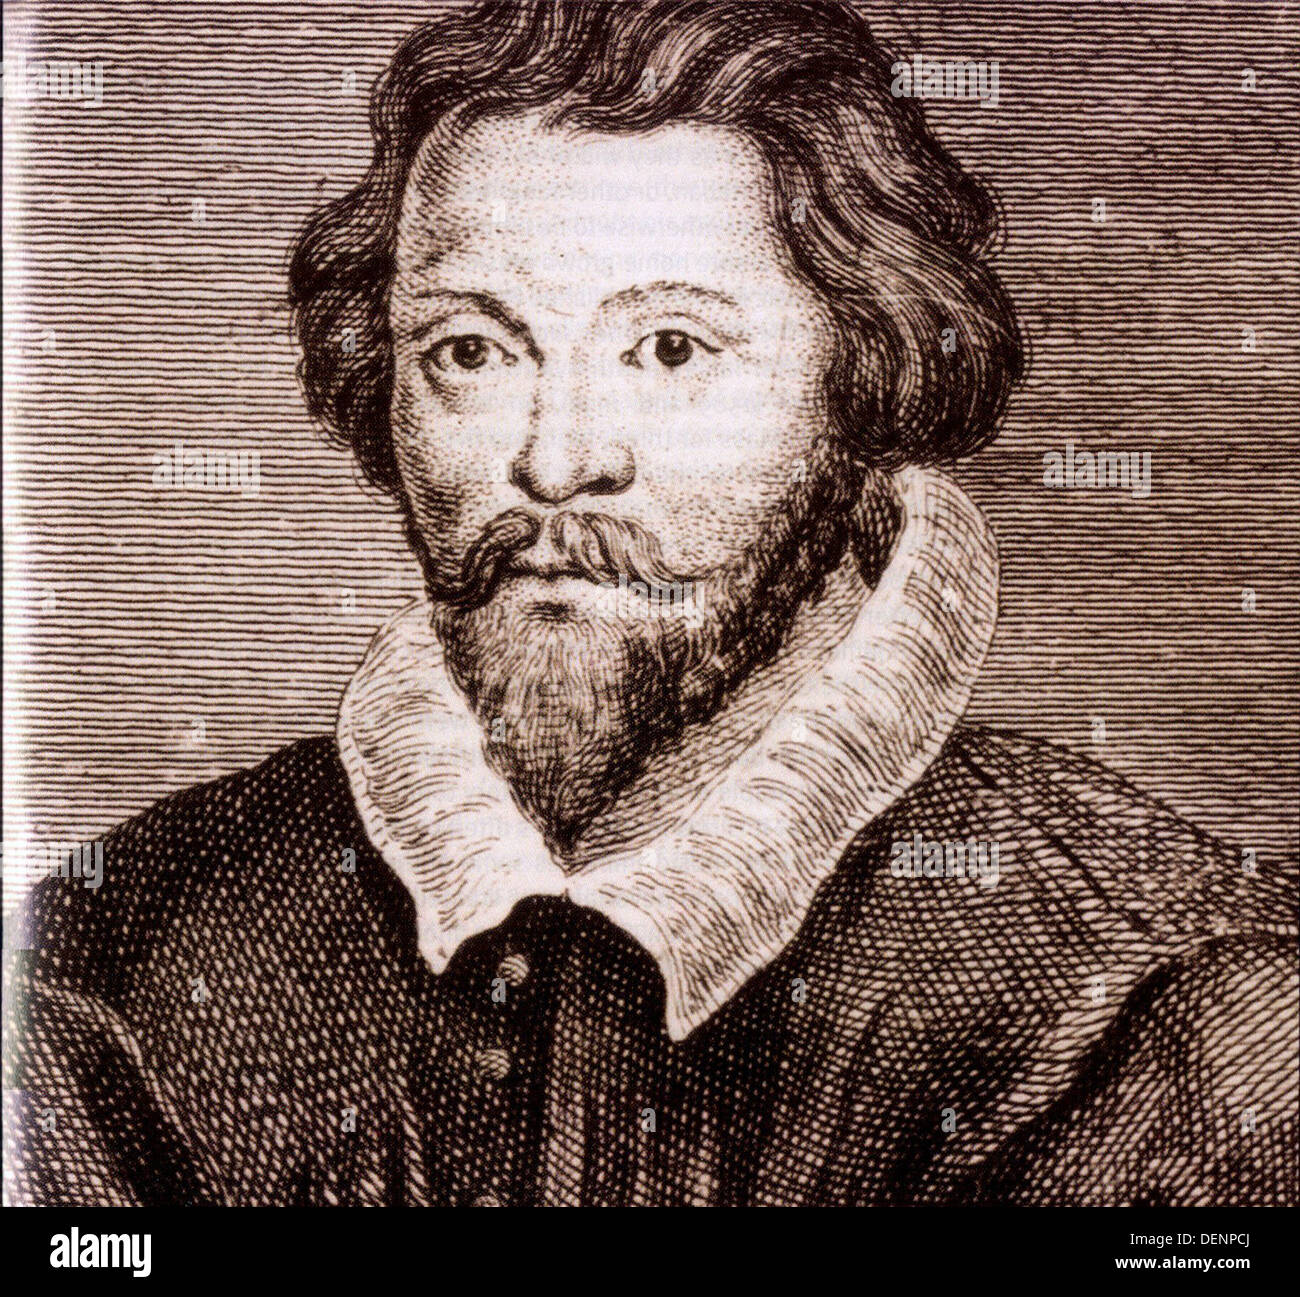 William Byrd, English composer of the Renaissance - Stock Image